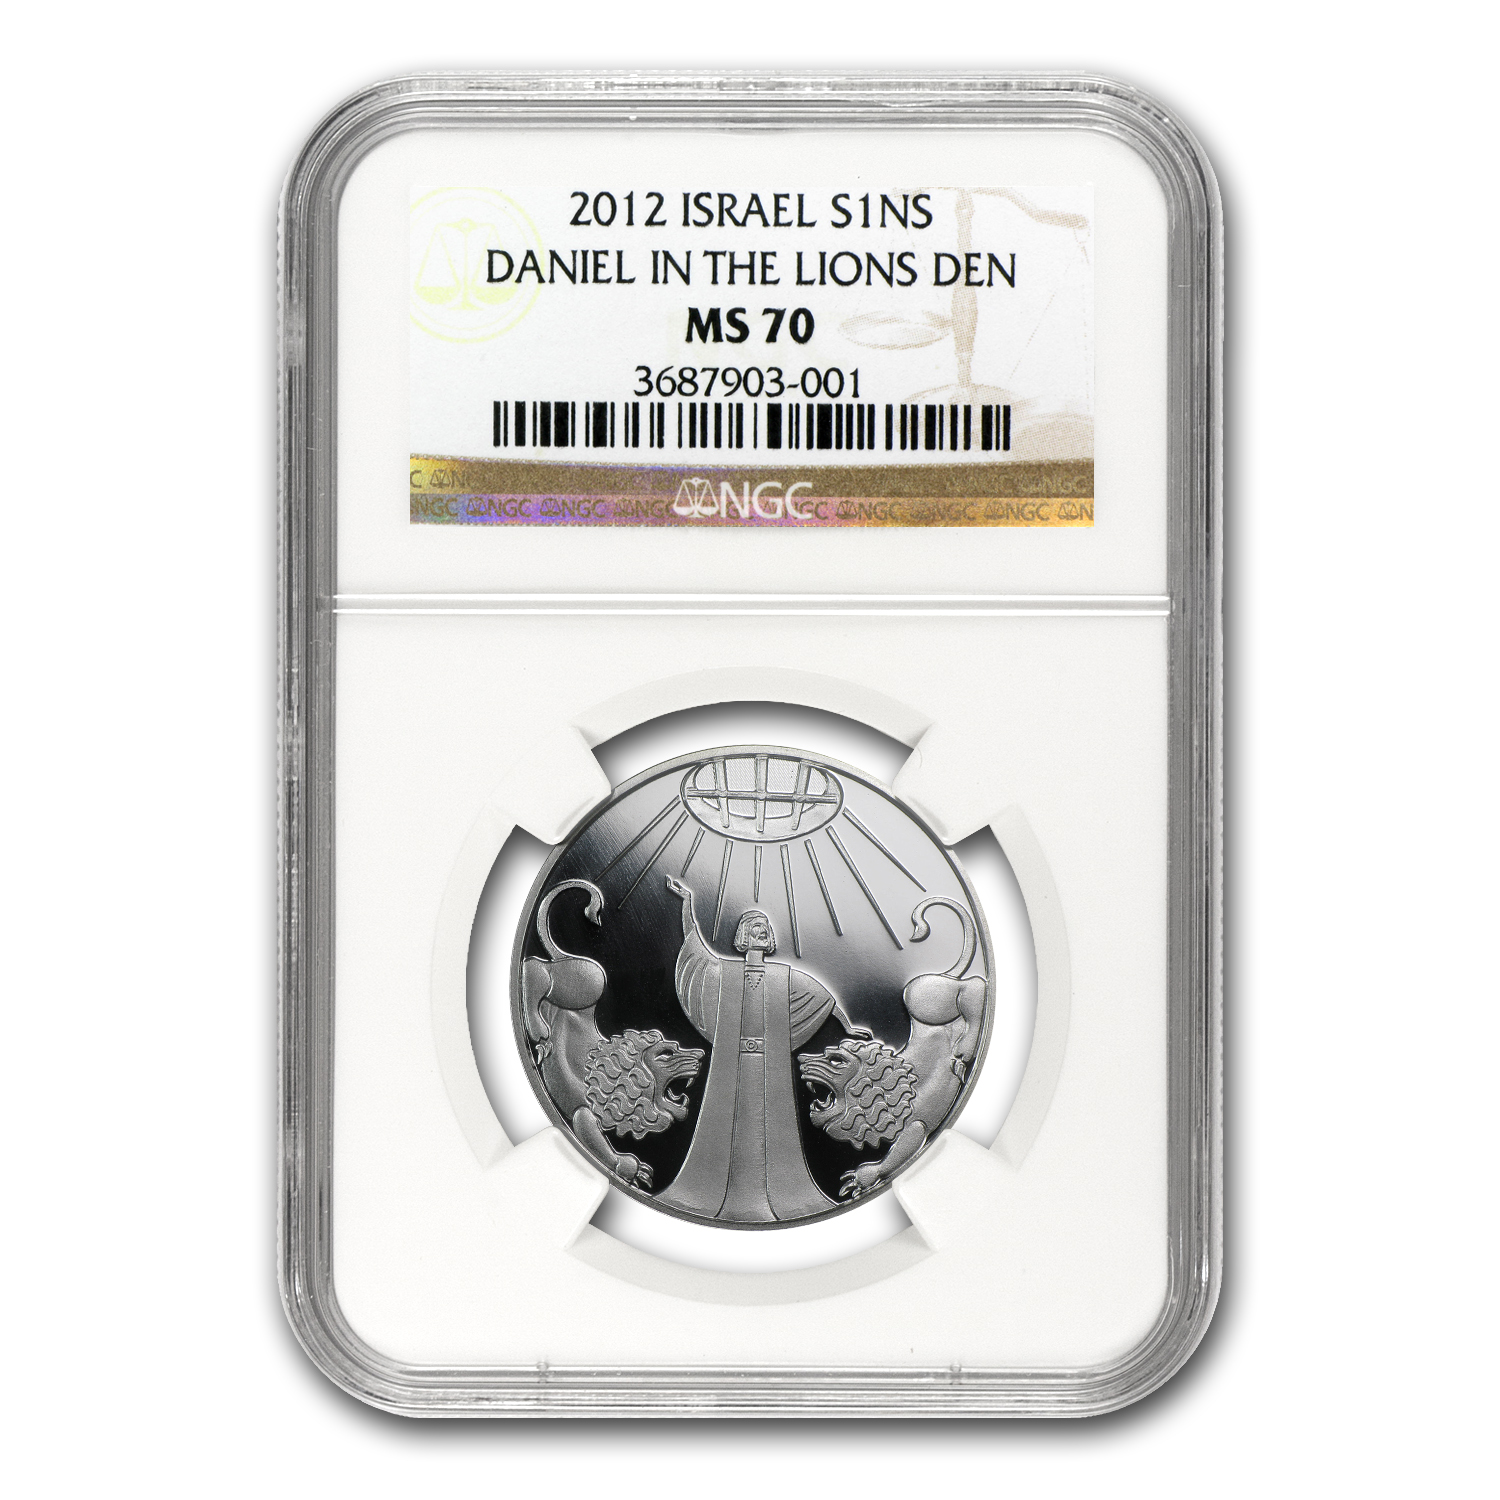 2012 Israel Daniel in the Lion's Den Silver 1 NIS MS-70 NGC